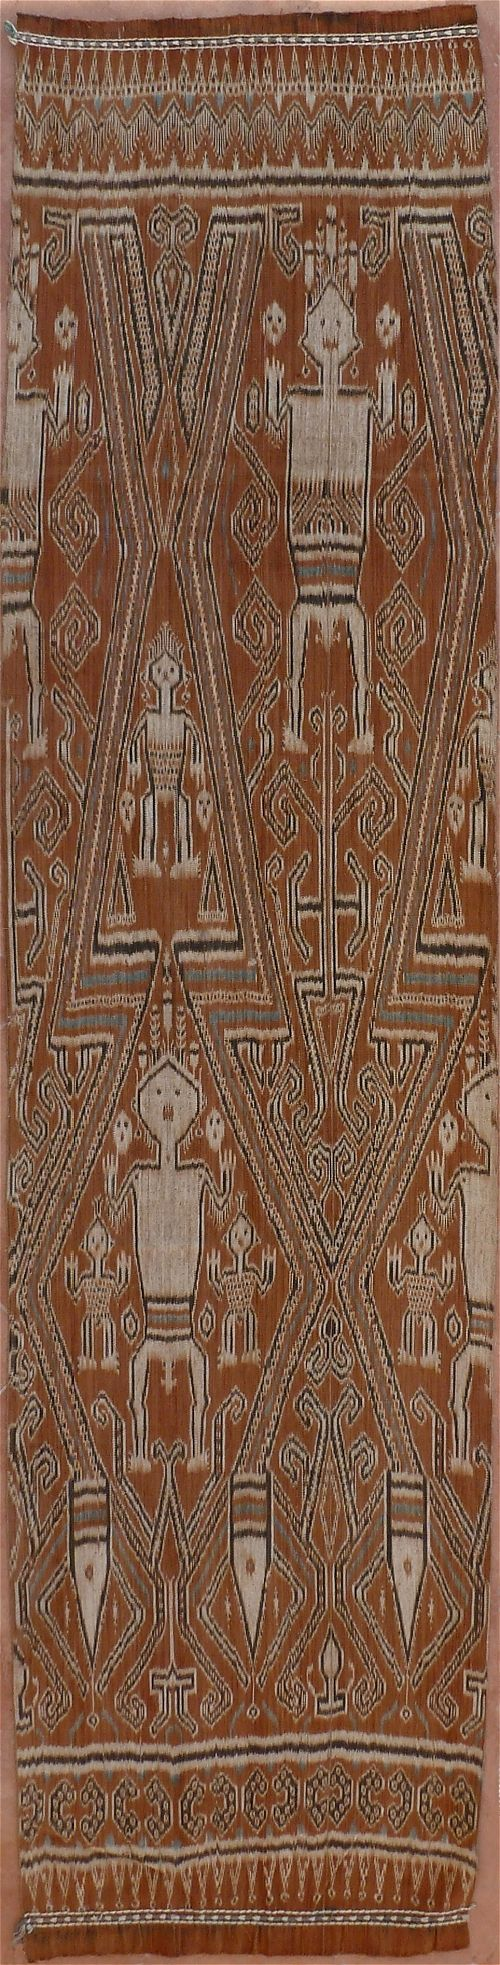 Pua Kumbu Ikat from Kalimantan, Borneo, Indonesia